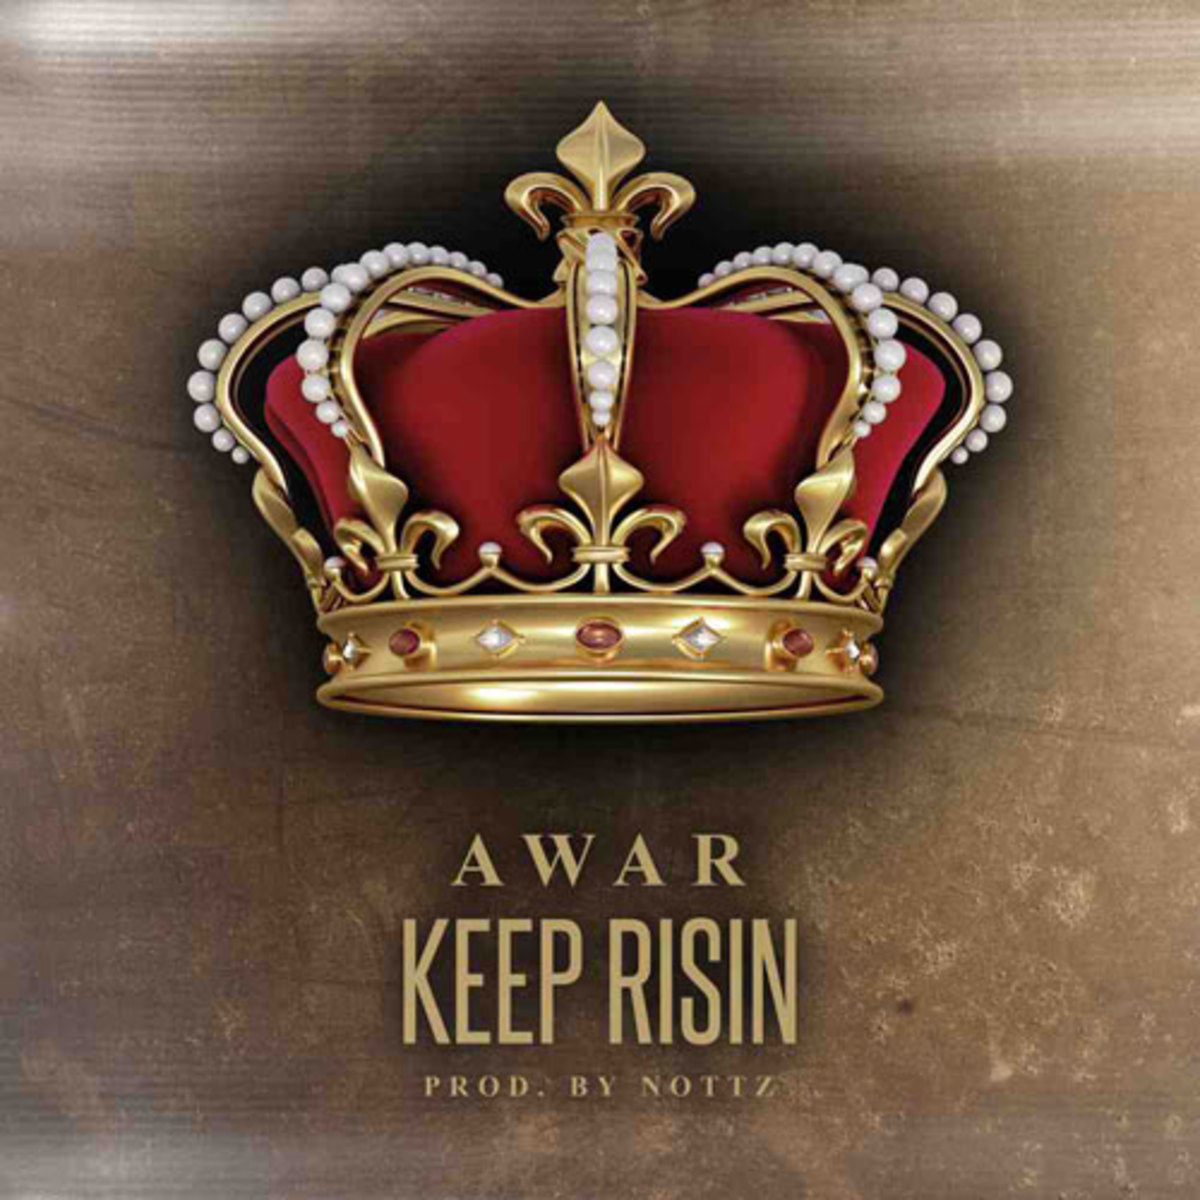 awar-keeprising.jpg